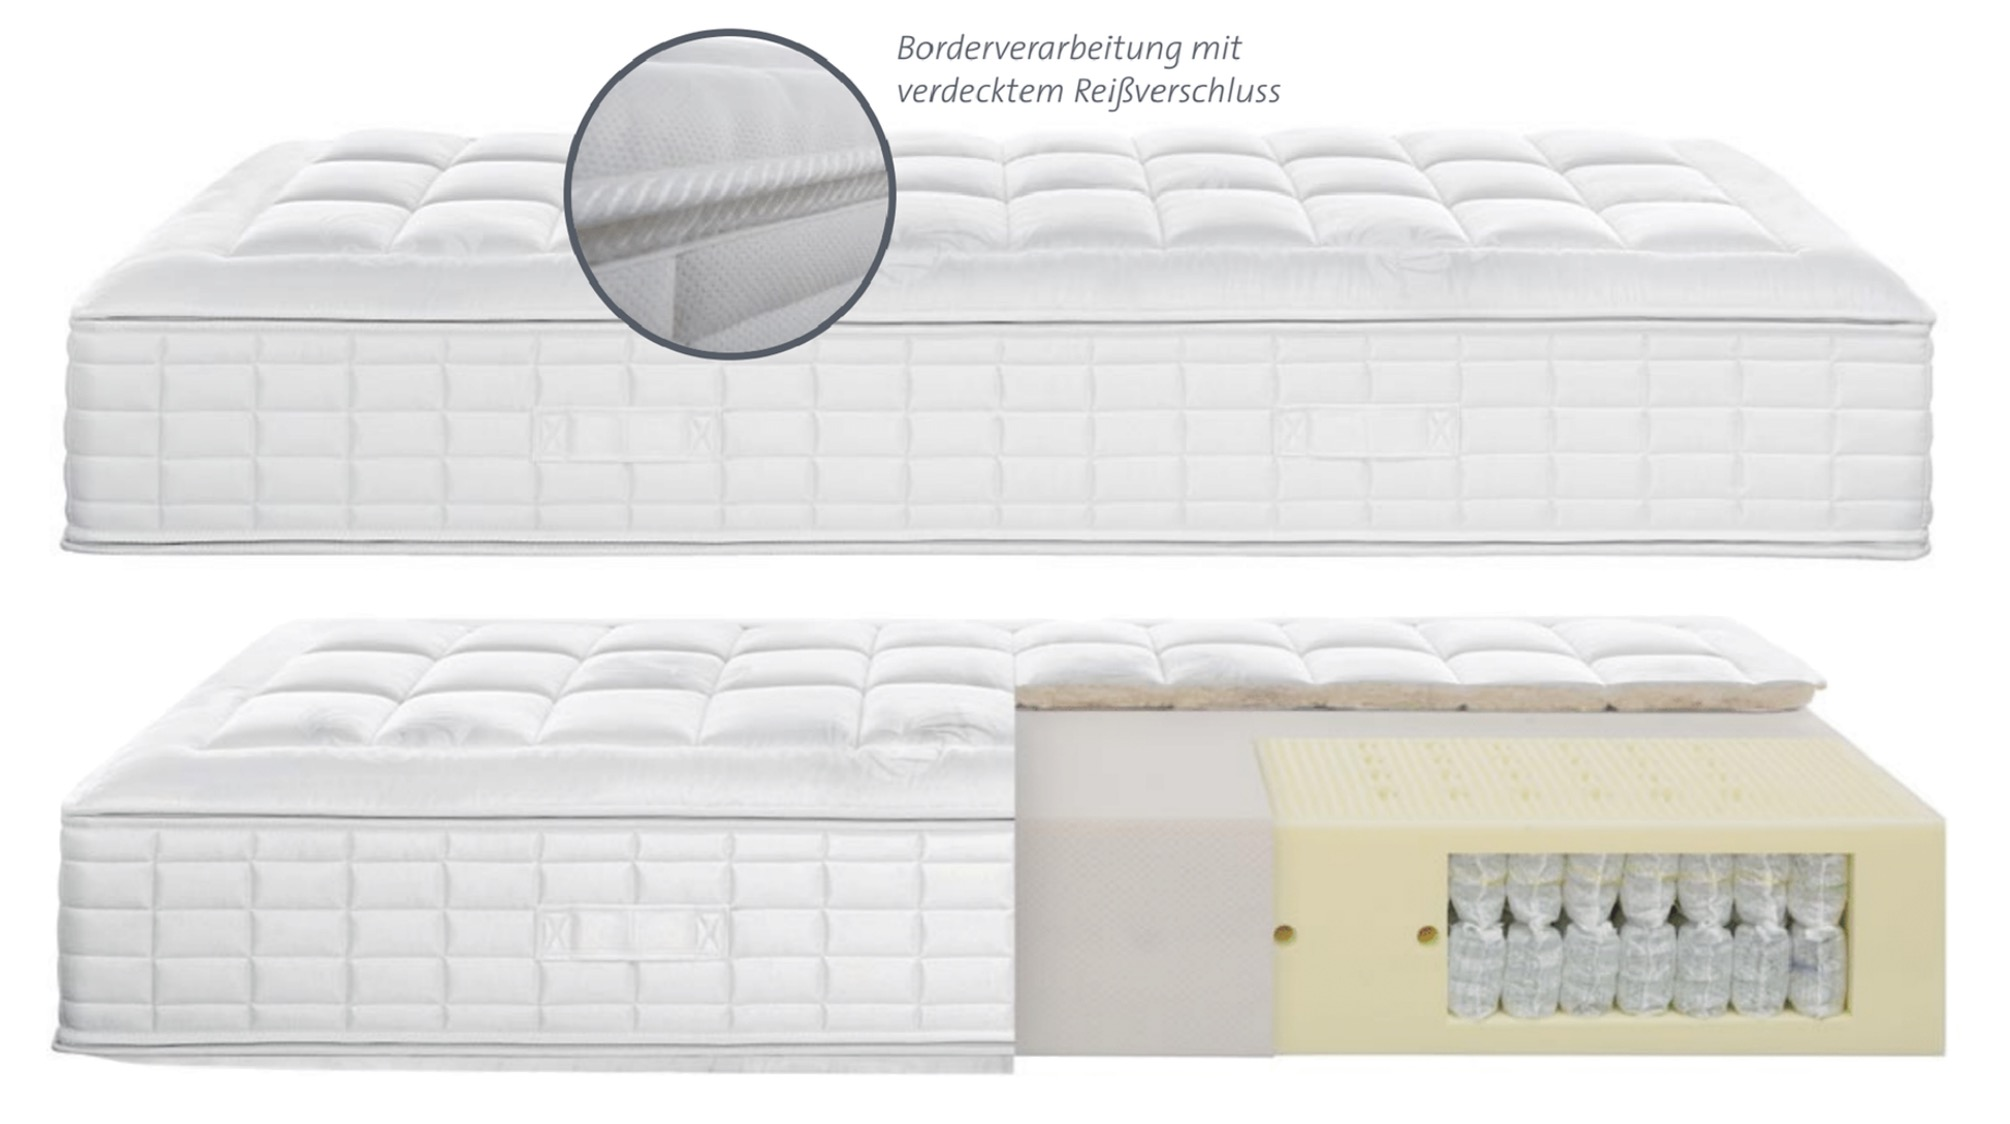 Boxspring Matratzen Boxspring Matratze